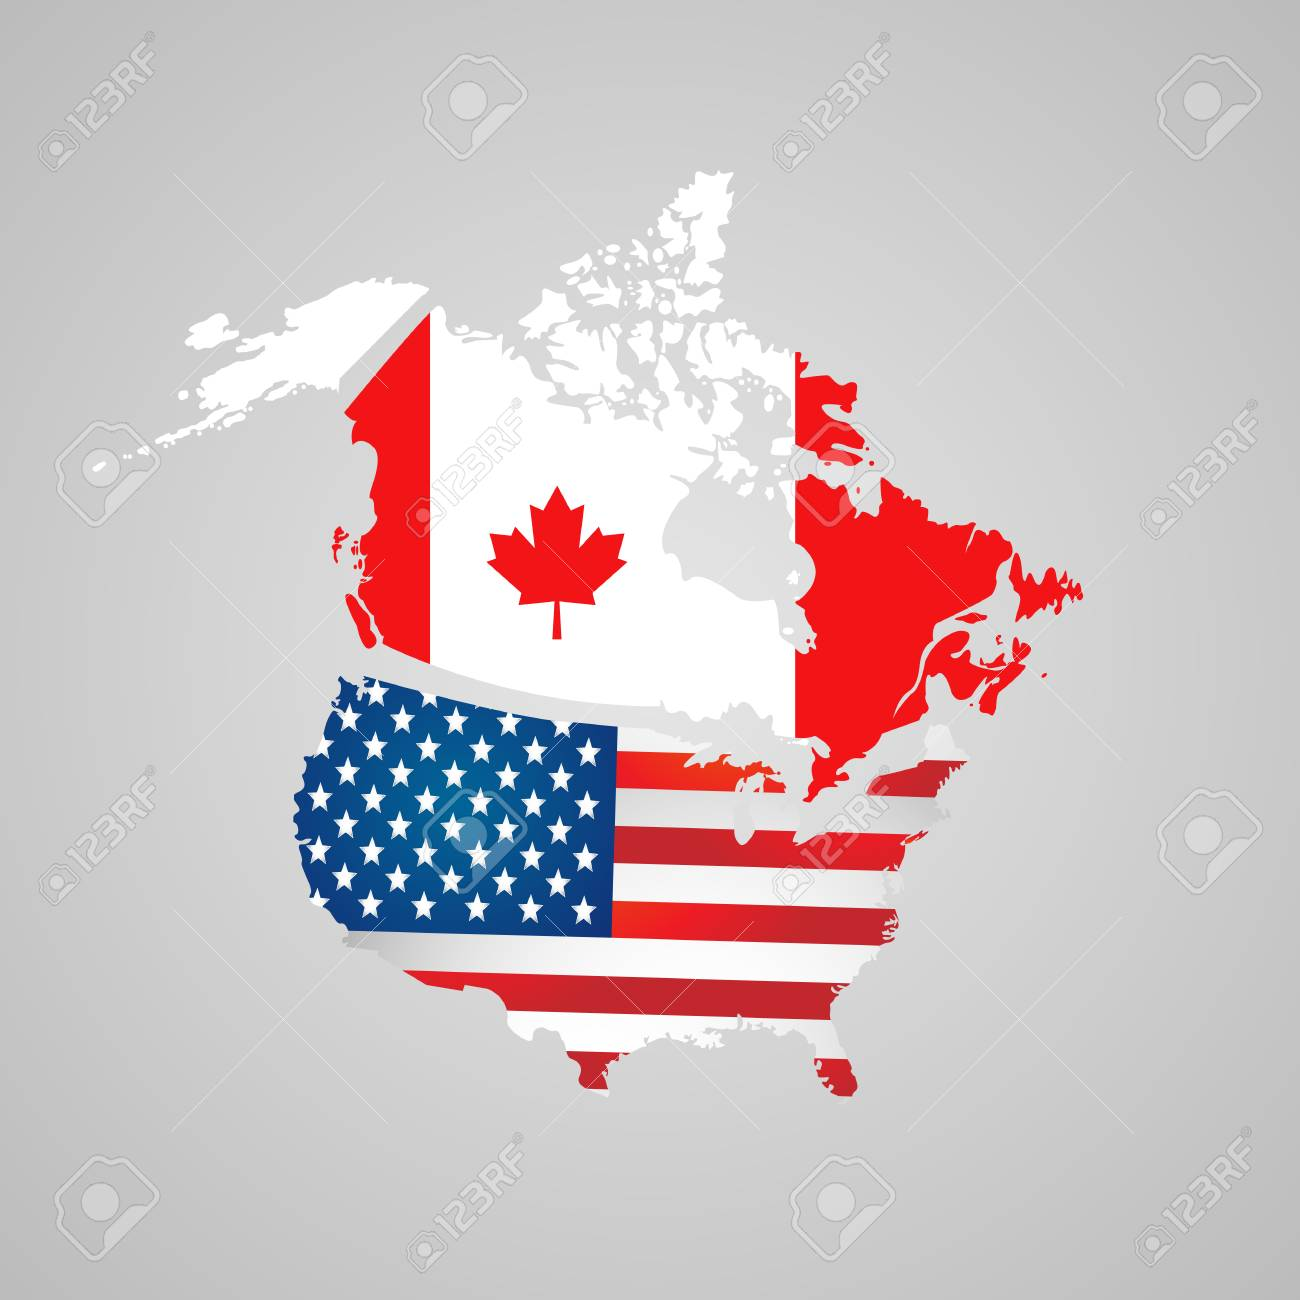 Map Of Canada Usa.Canada Usa Map Flags North American Country Set With Map Pointers